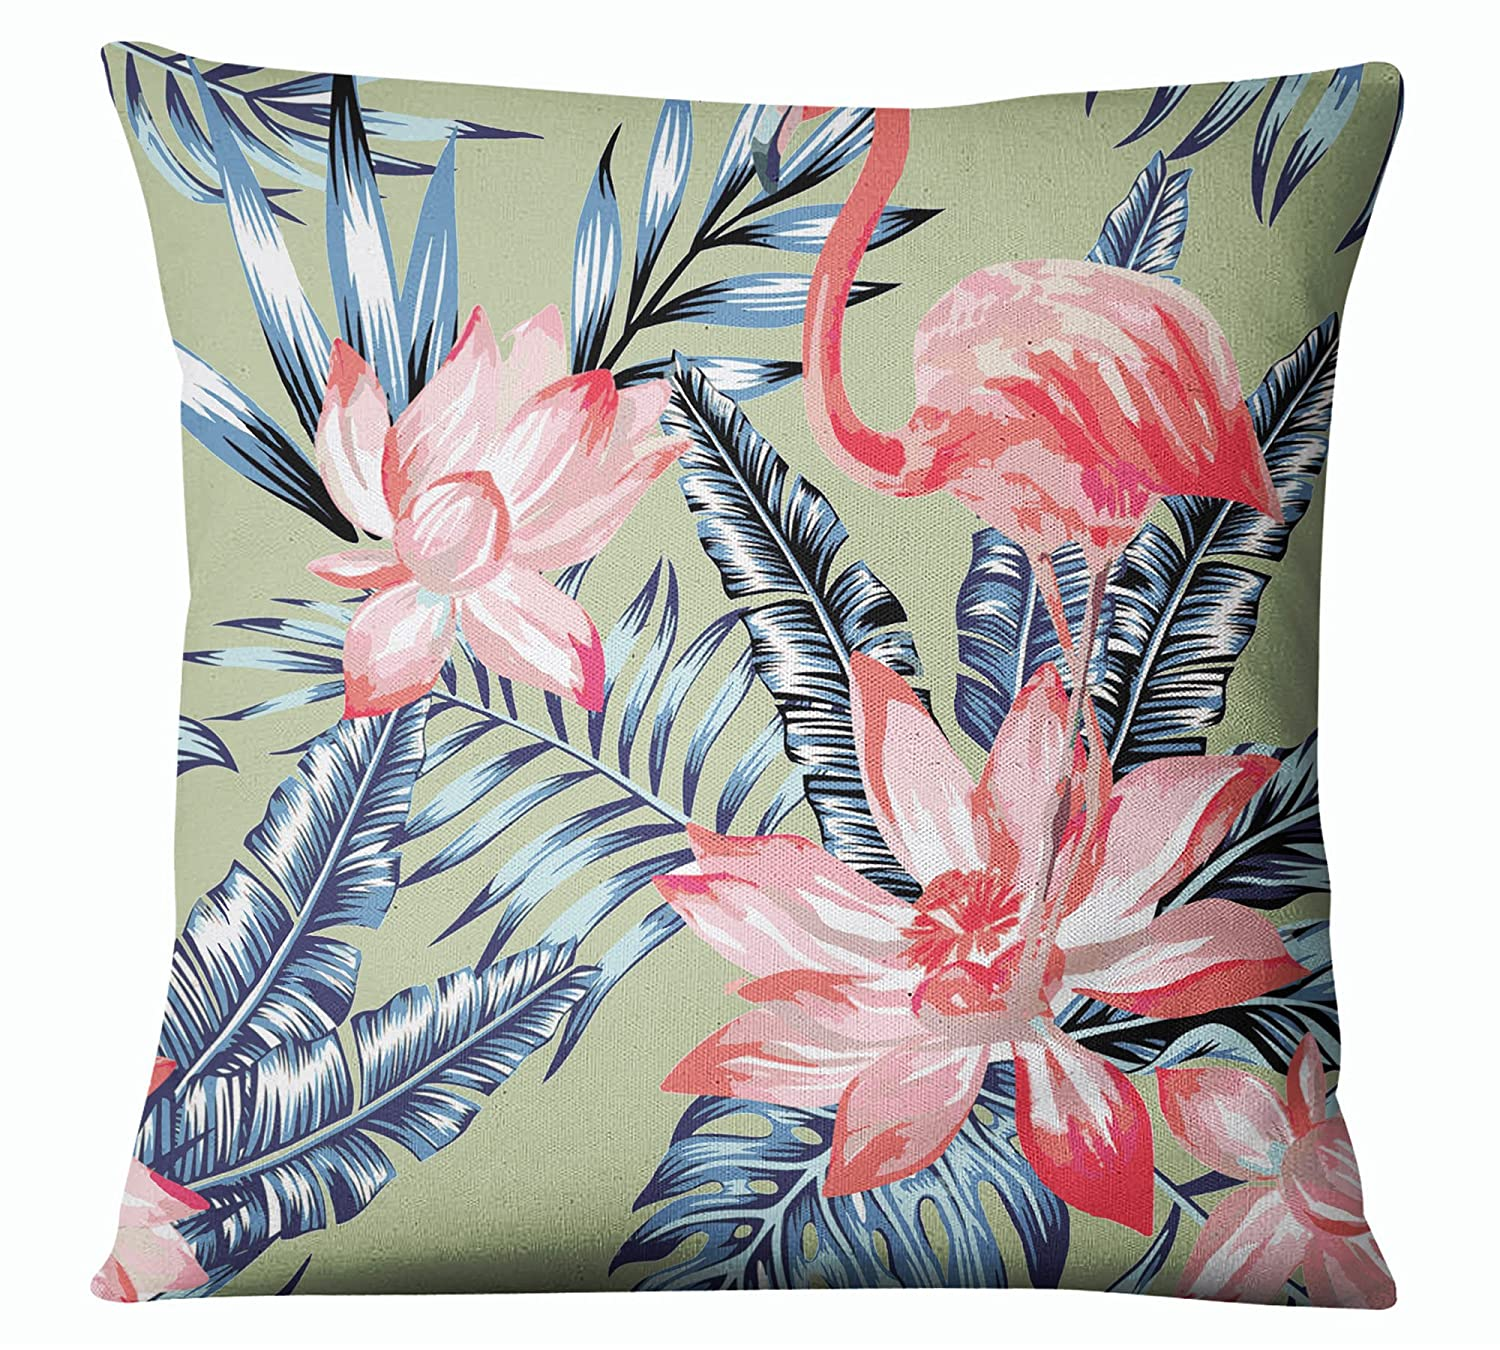 Amazon.com: s4sassy decorativo Flamingo impresión menta ...